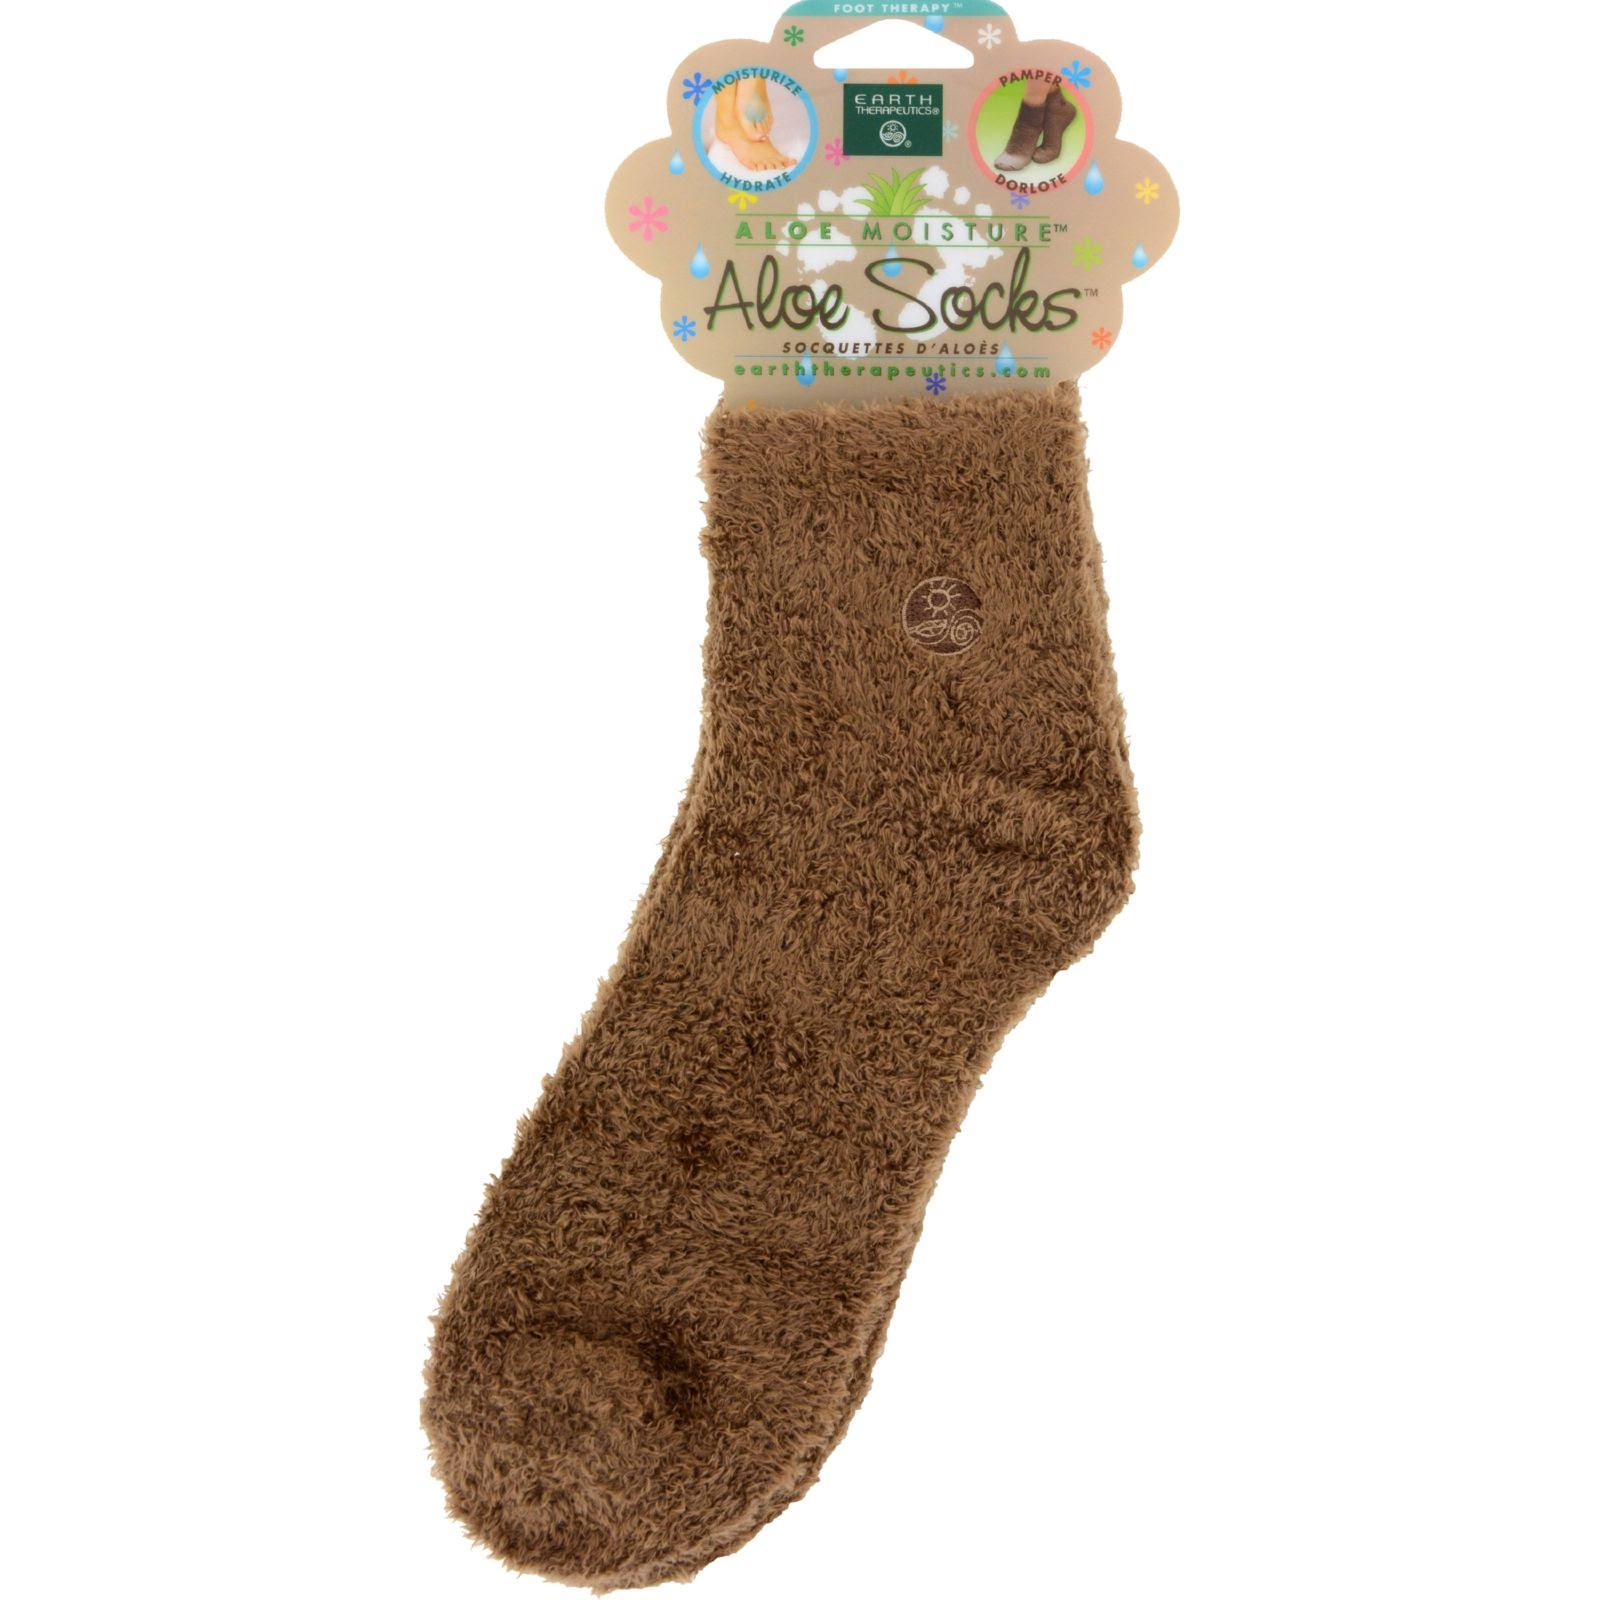 Earth Therapeutics Moisturizing Aloe Socks - Brown